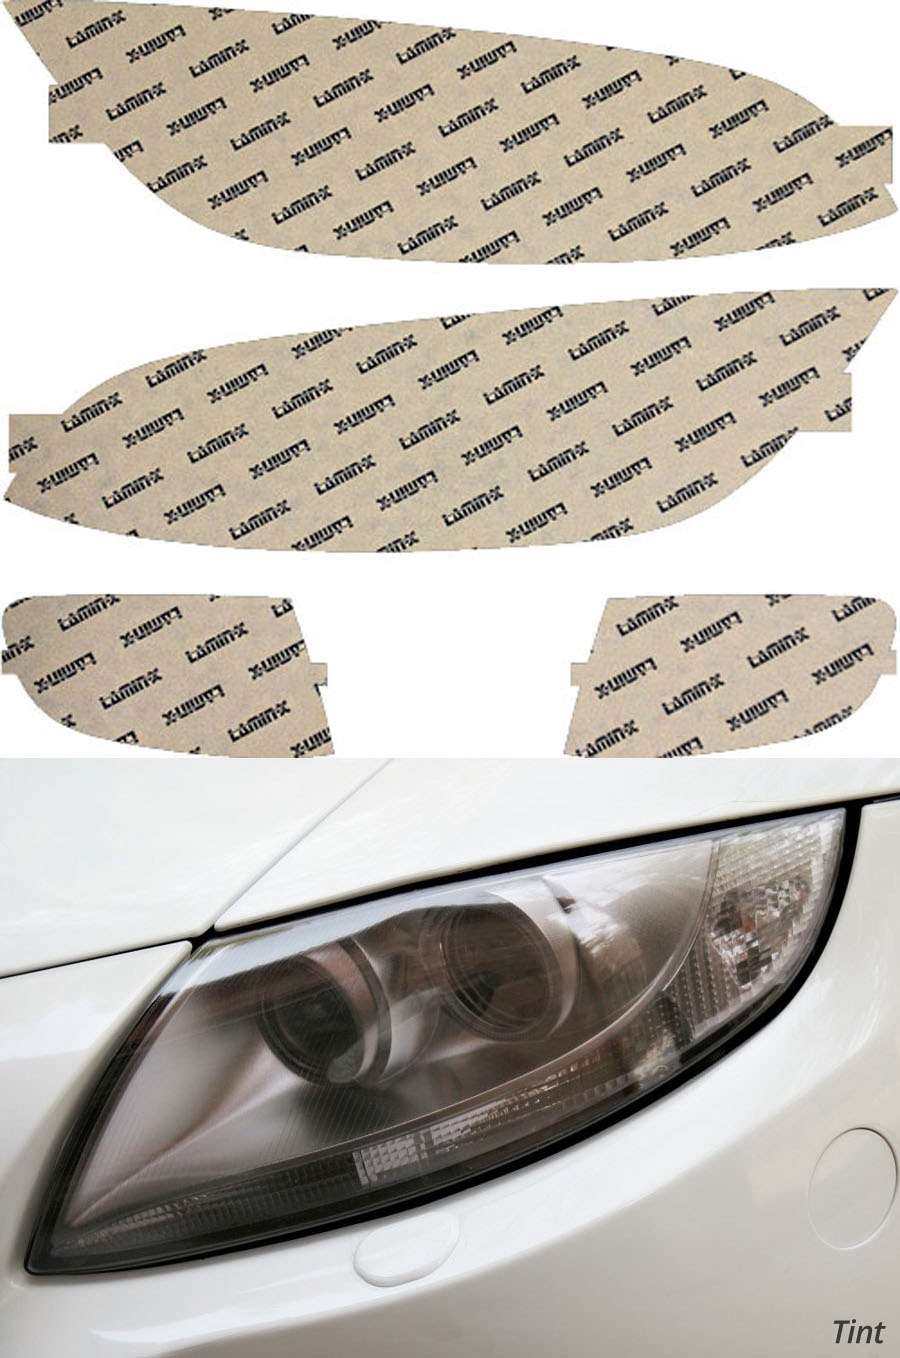 BMW 3-Series Coupe 07-10 Tint Headlight Covers Lamin-X B021T